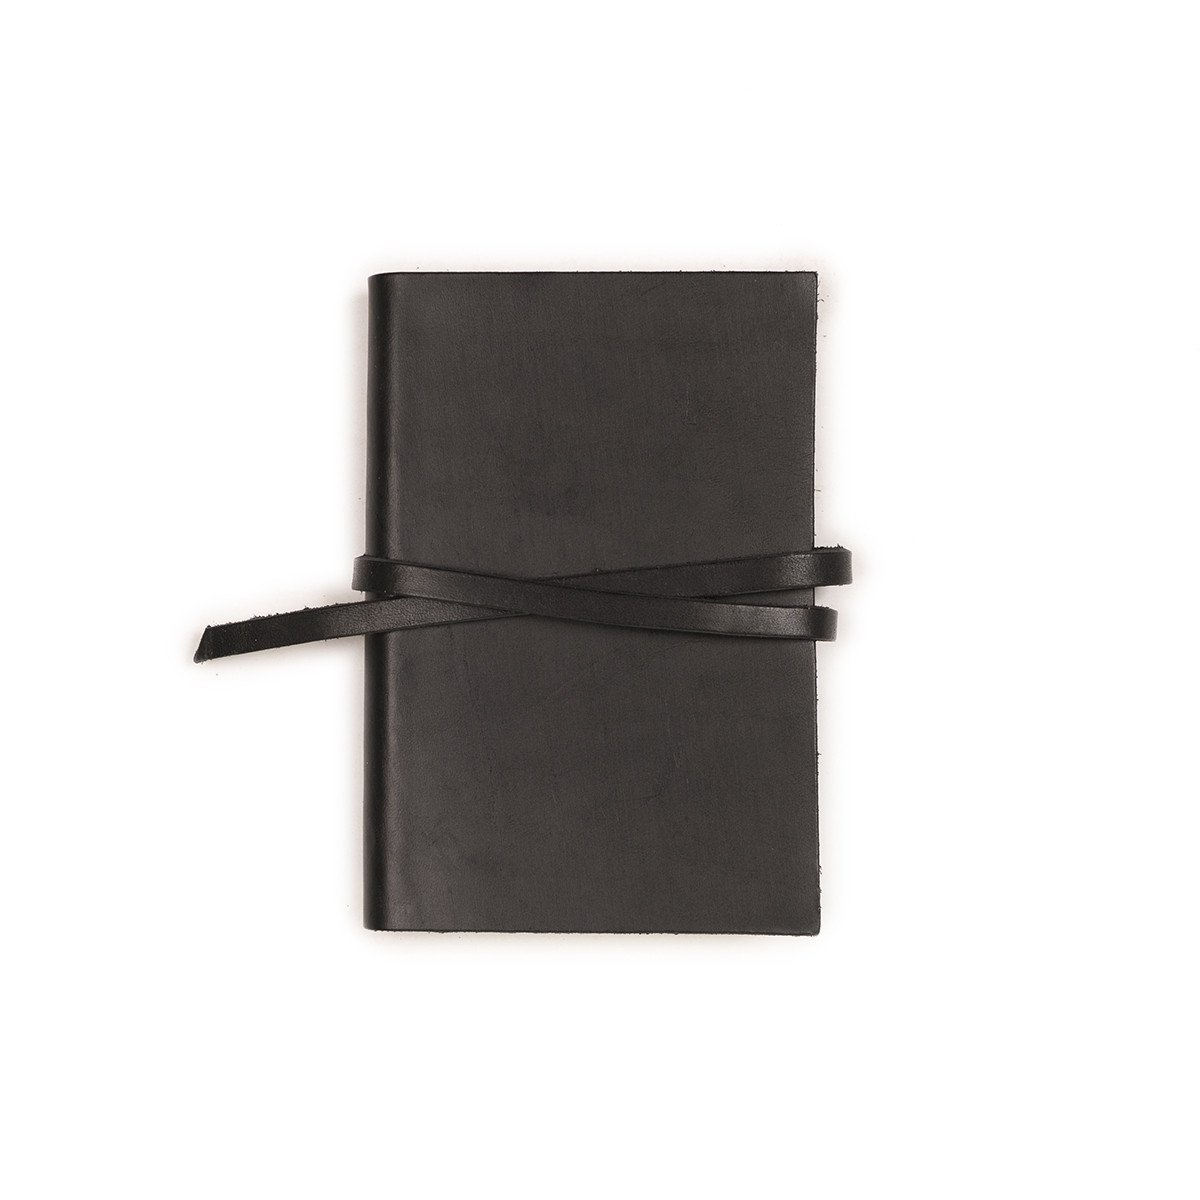 Trailhead Leather Notebook